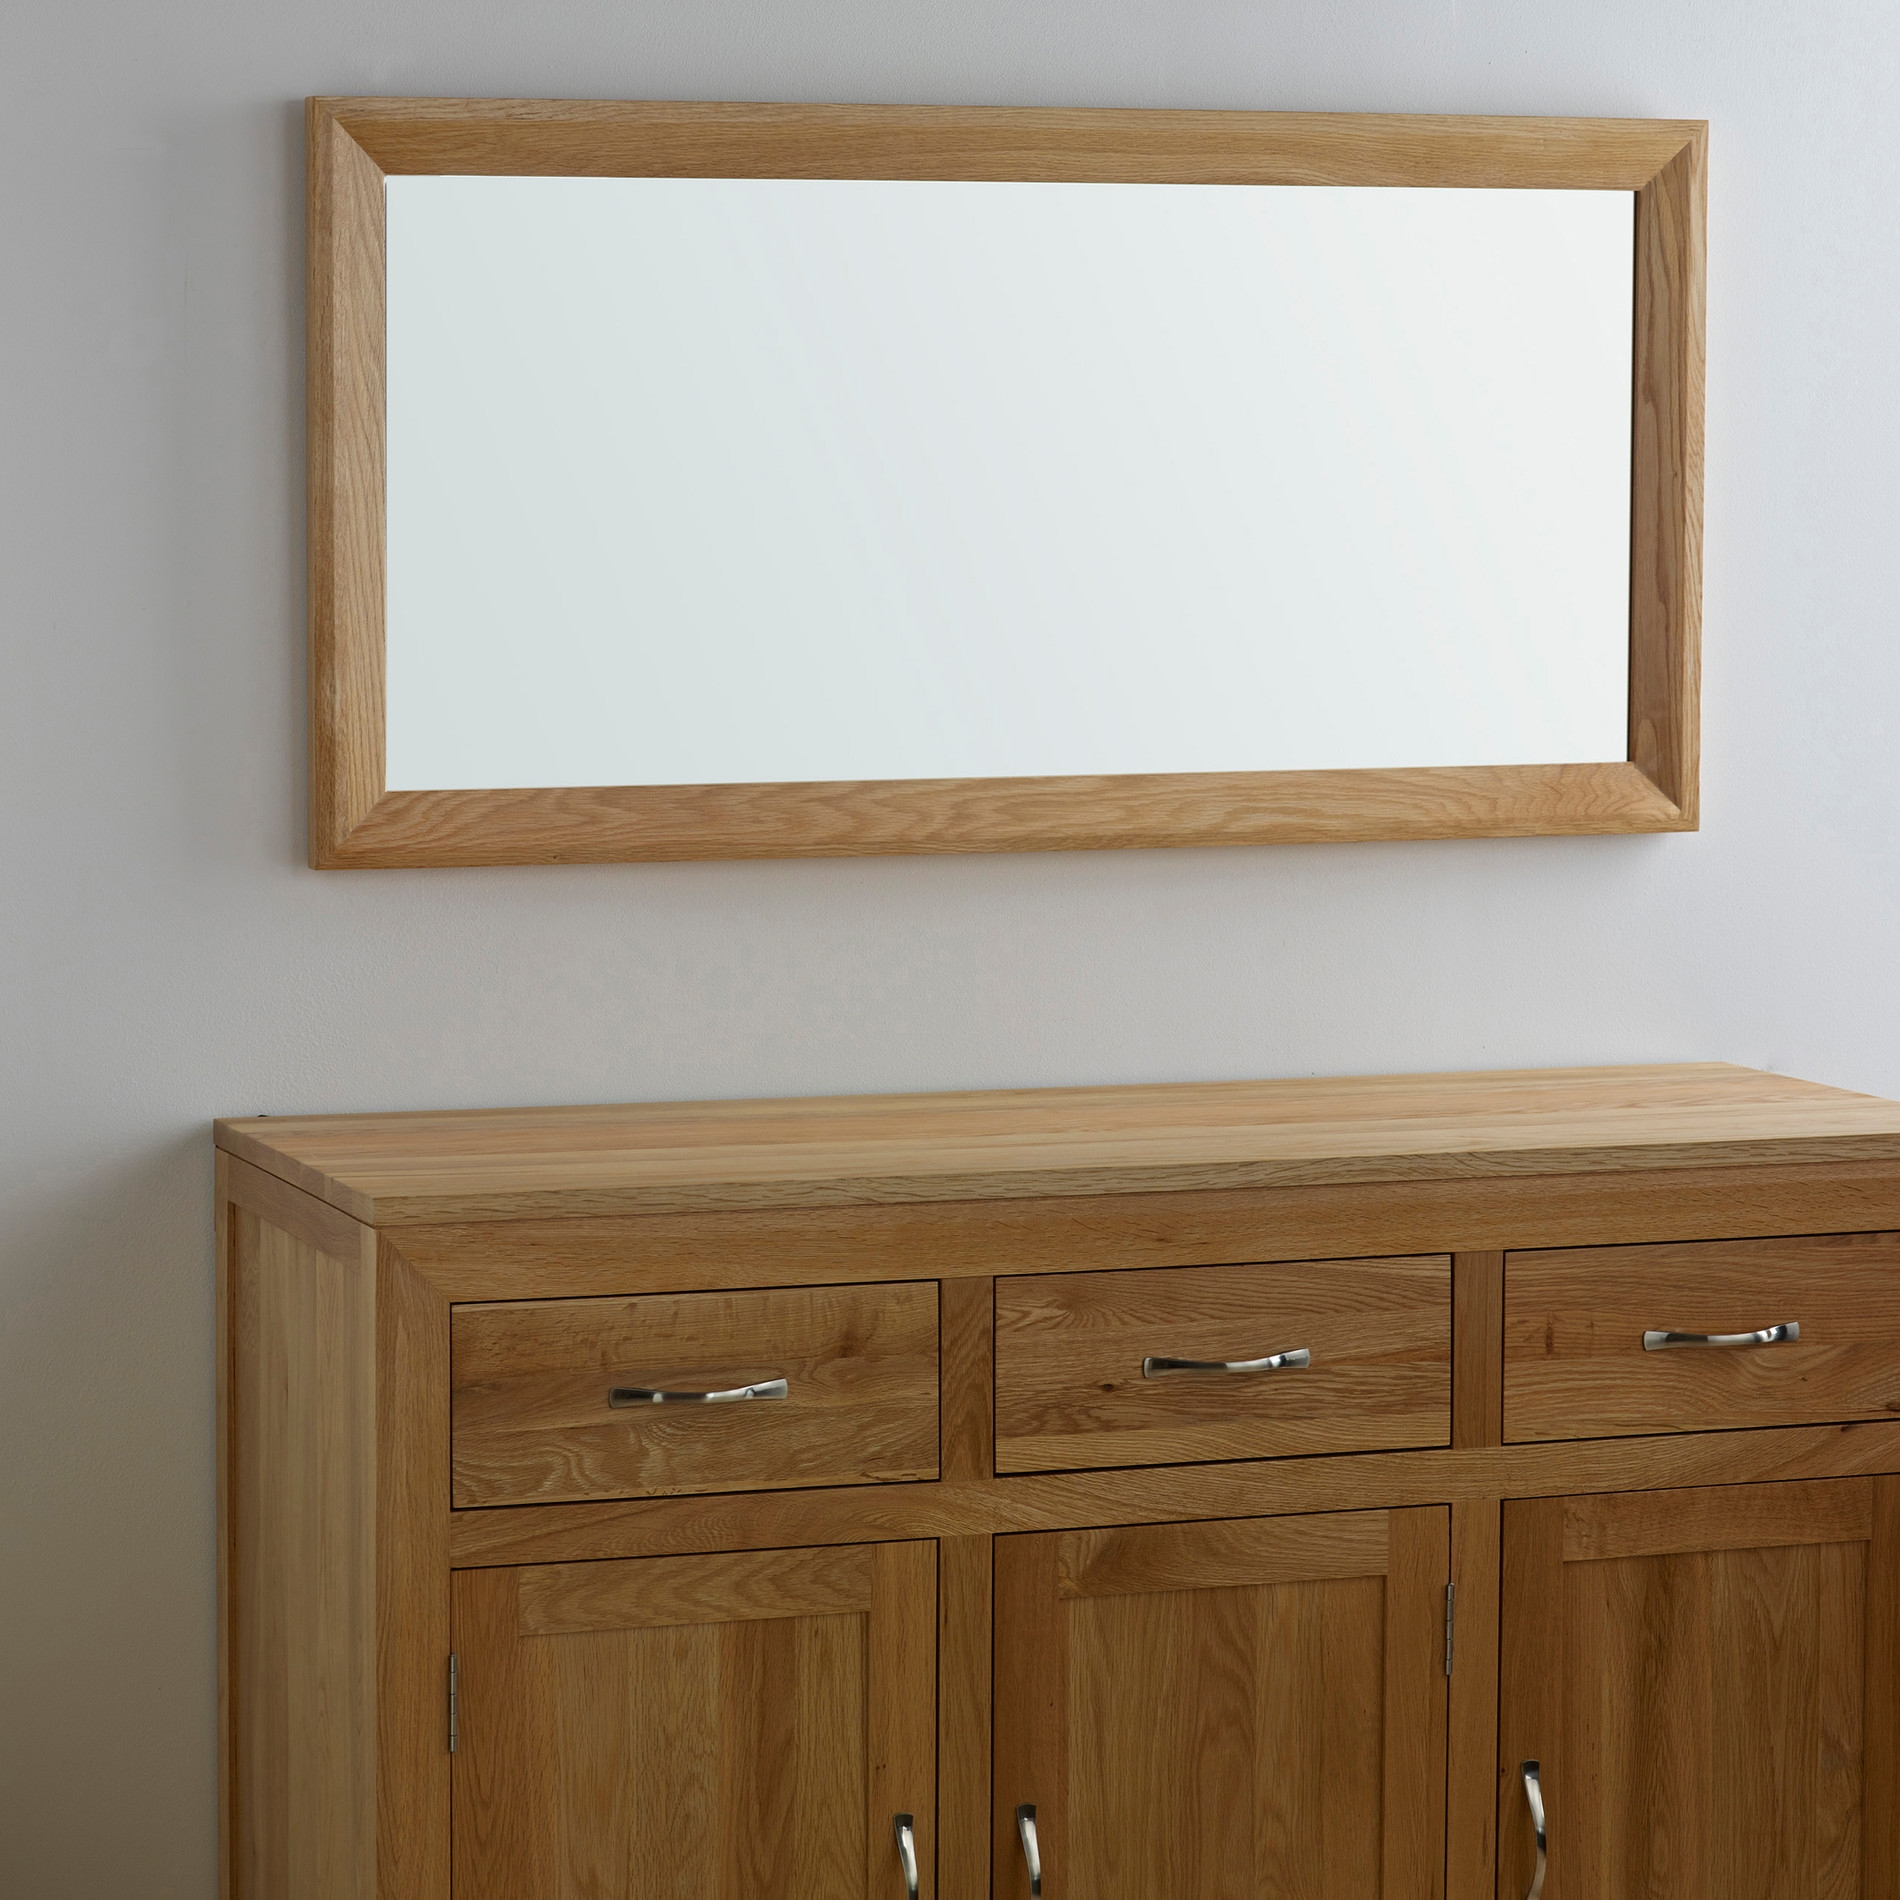 Bevel Natural Solid Oak Wall Mirror Oak Furniture Land Inside Oak Wall Mirrors (Image 1 of 15)